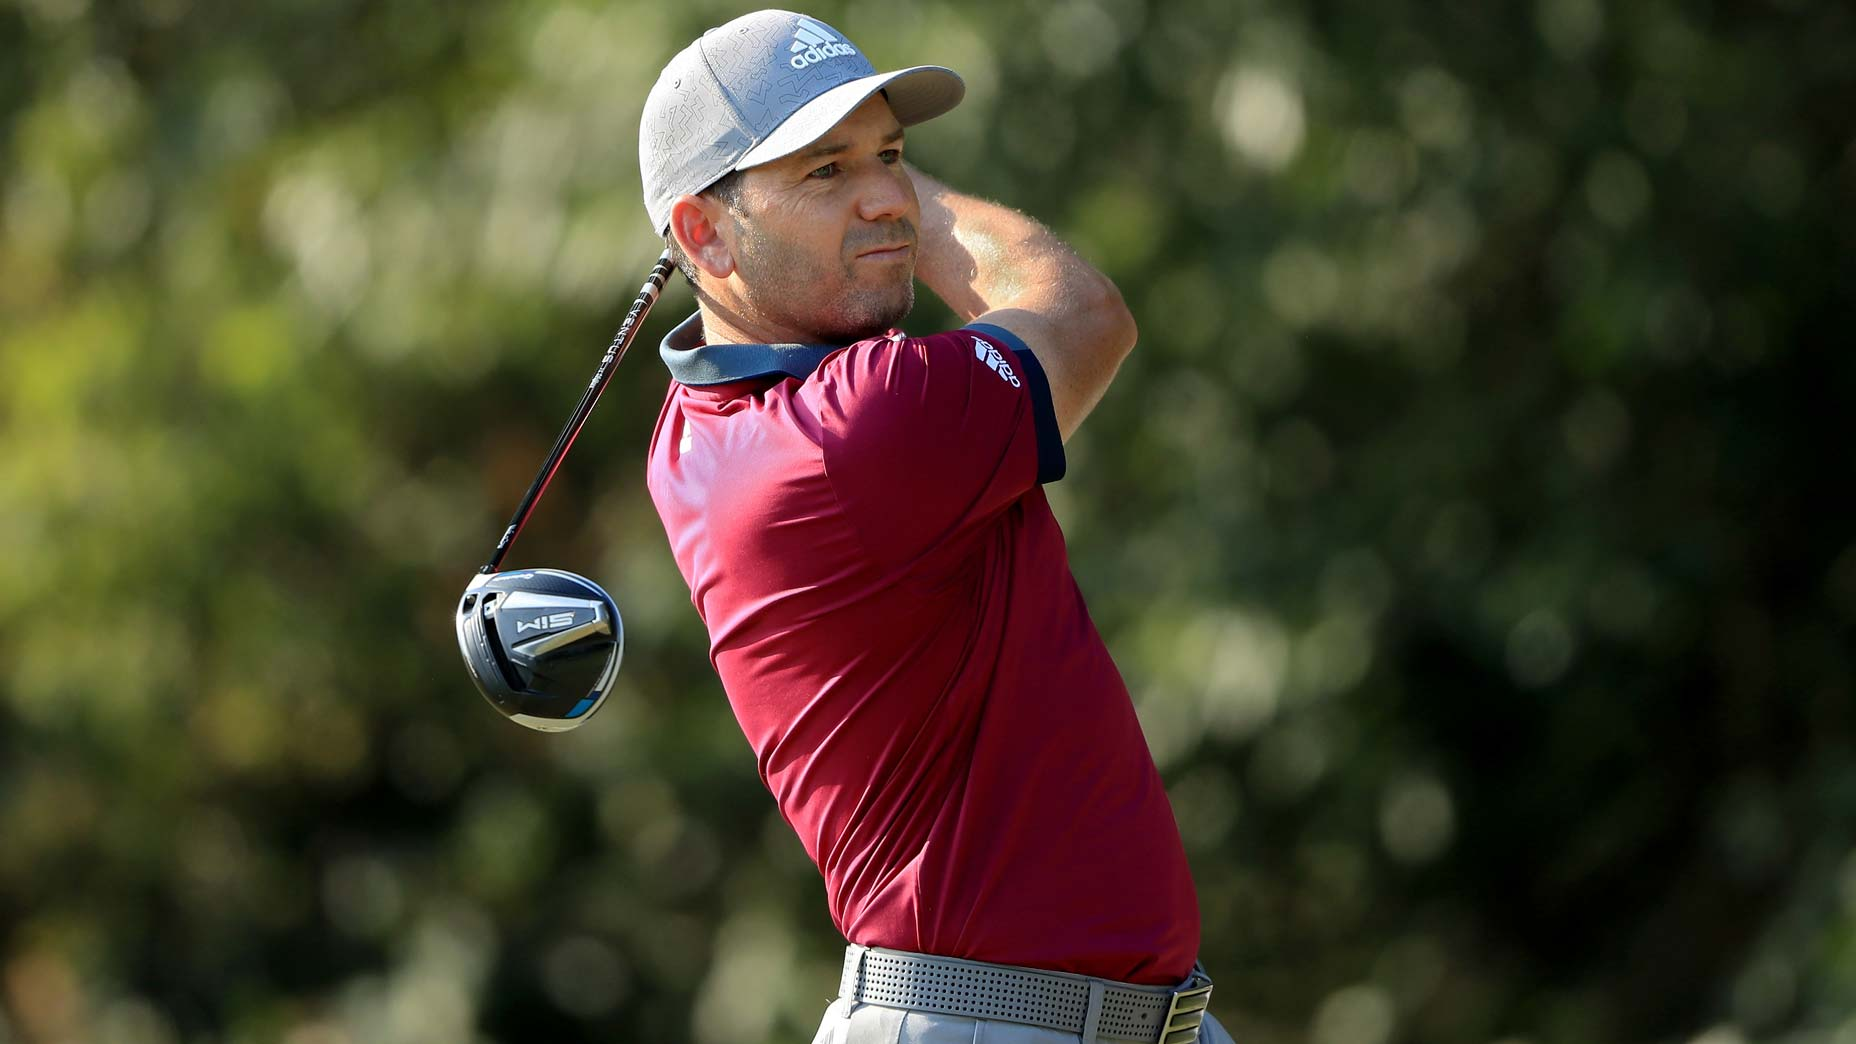 3 Things To Know After Round 3 Of The Sanderson Farms Championship